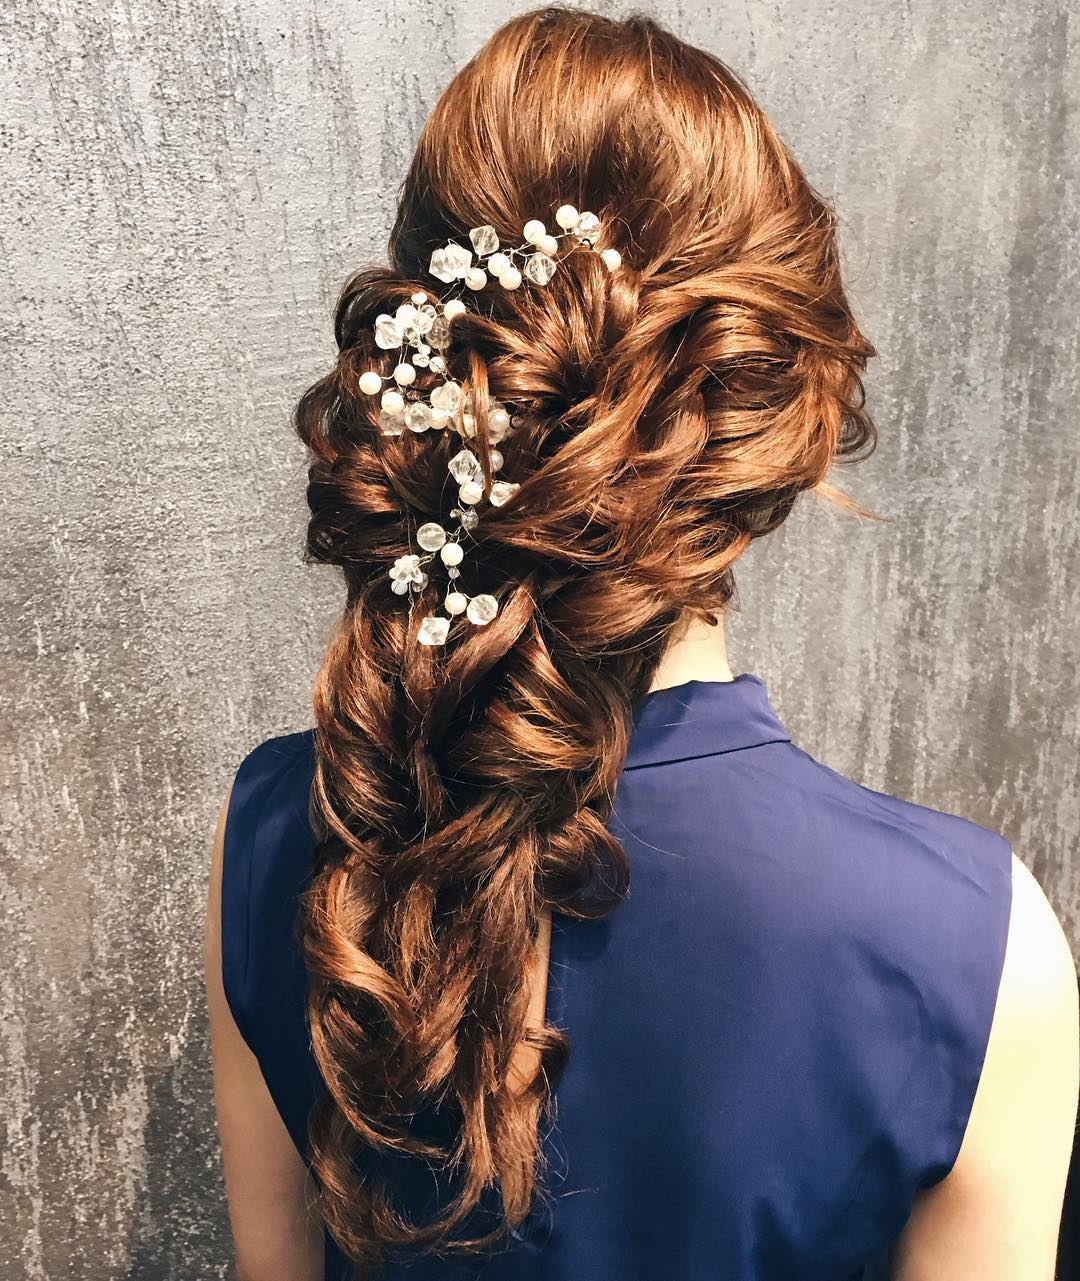 Admirable 45 Chic Quinceanera Hairstyles Best Styles For Your Celebration Short Hairstyles Gunalazisus